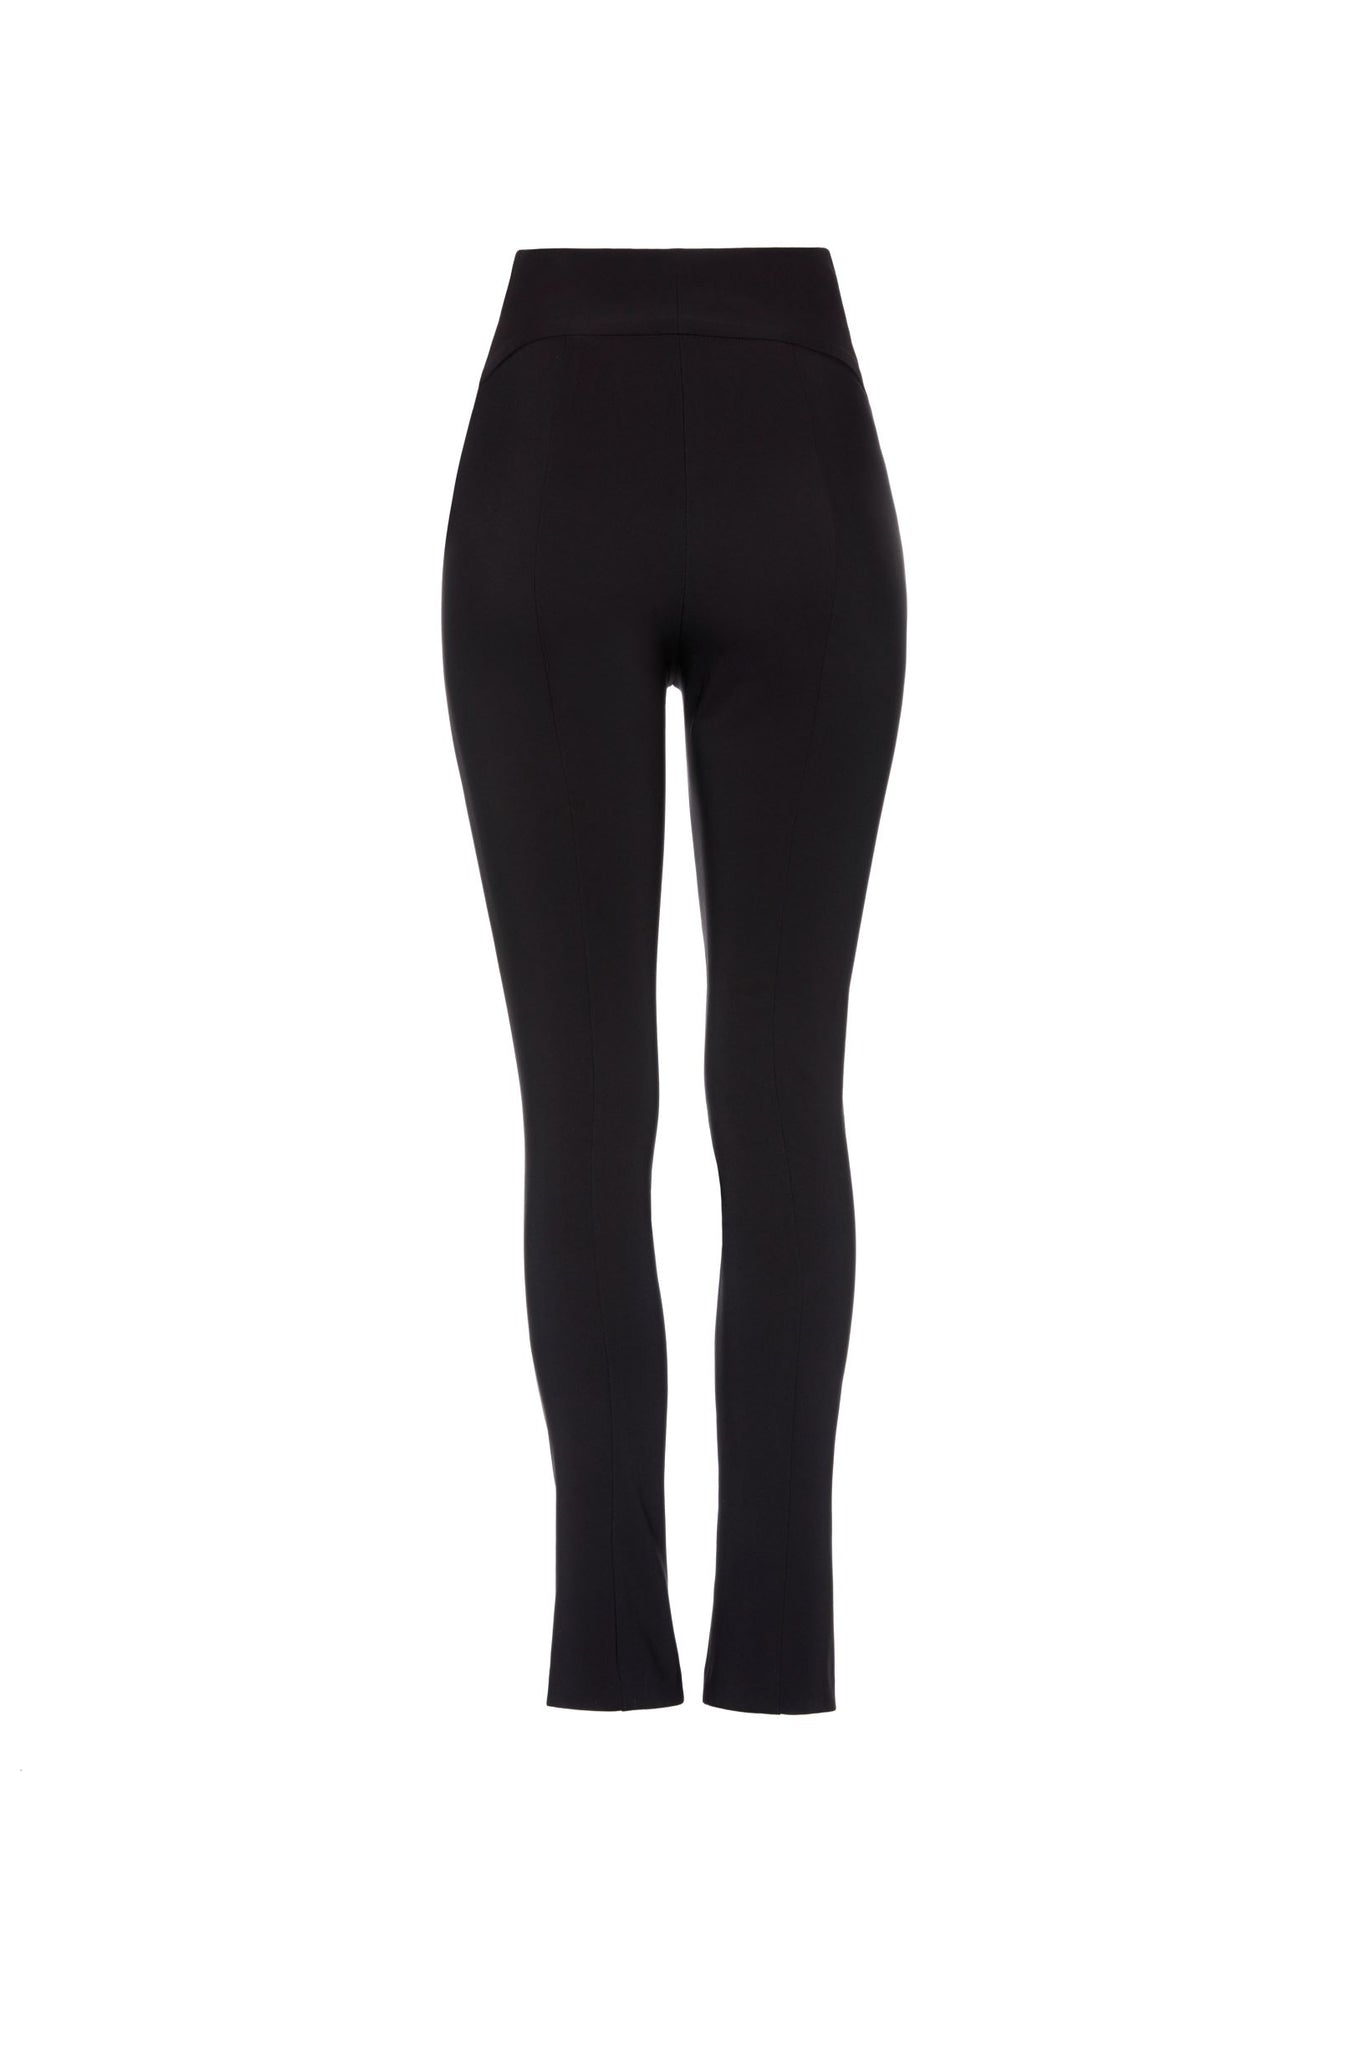 Naomi Super High Waist Pants - Black